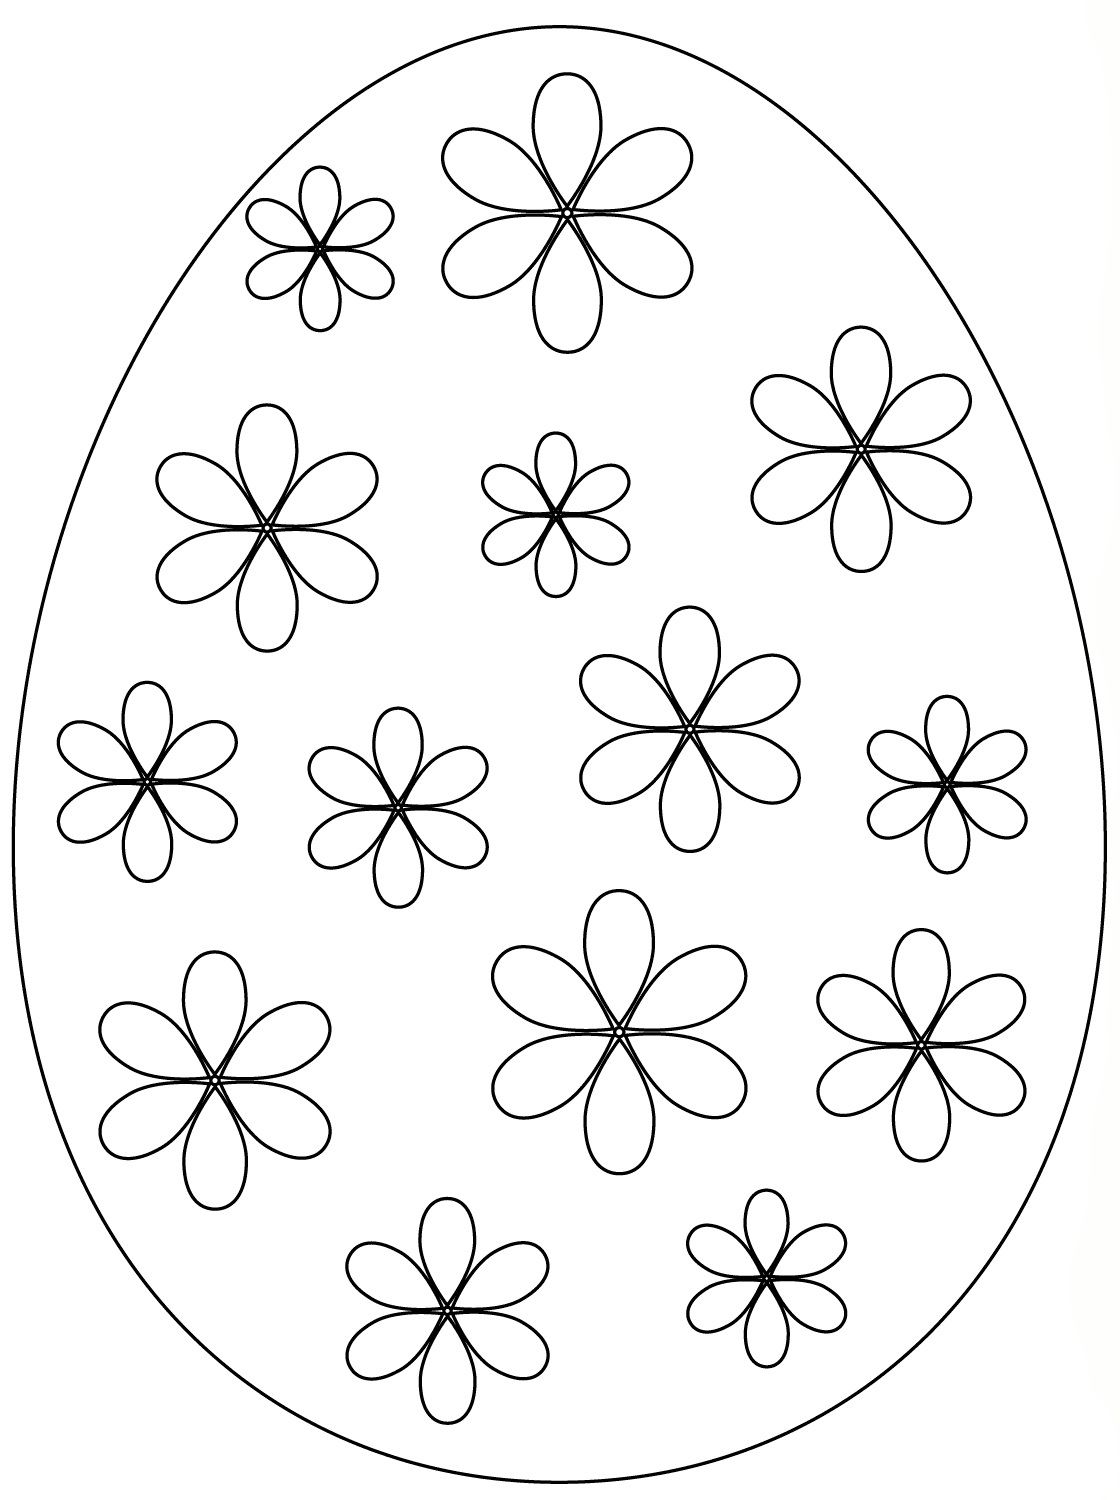 Easter Egg Simple Flowers